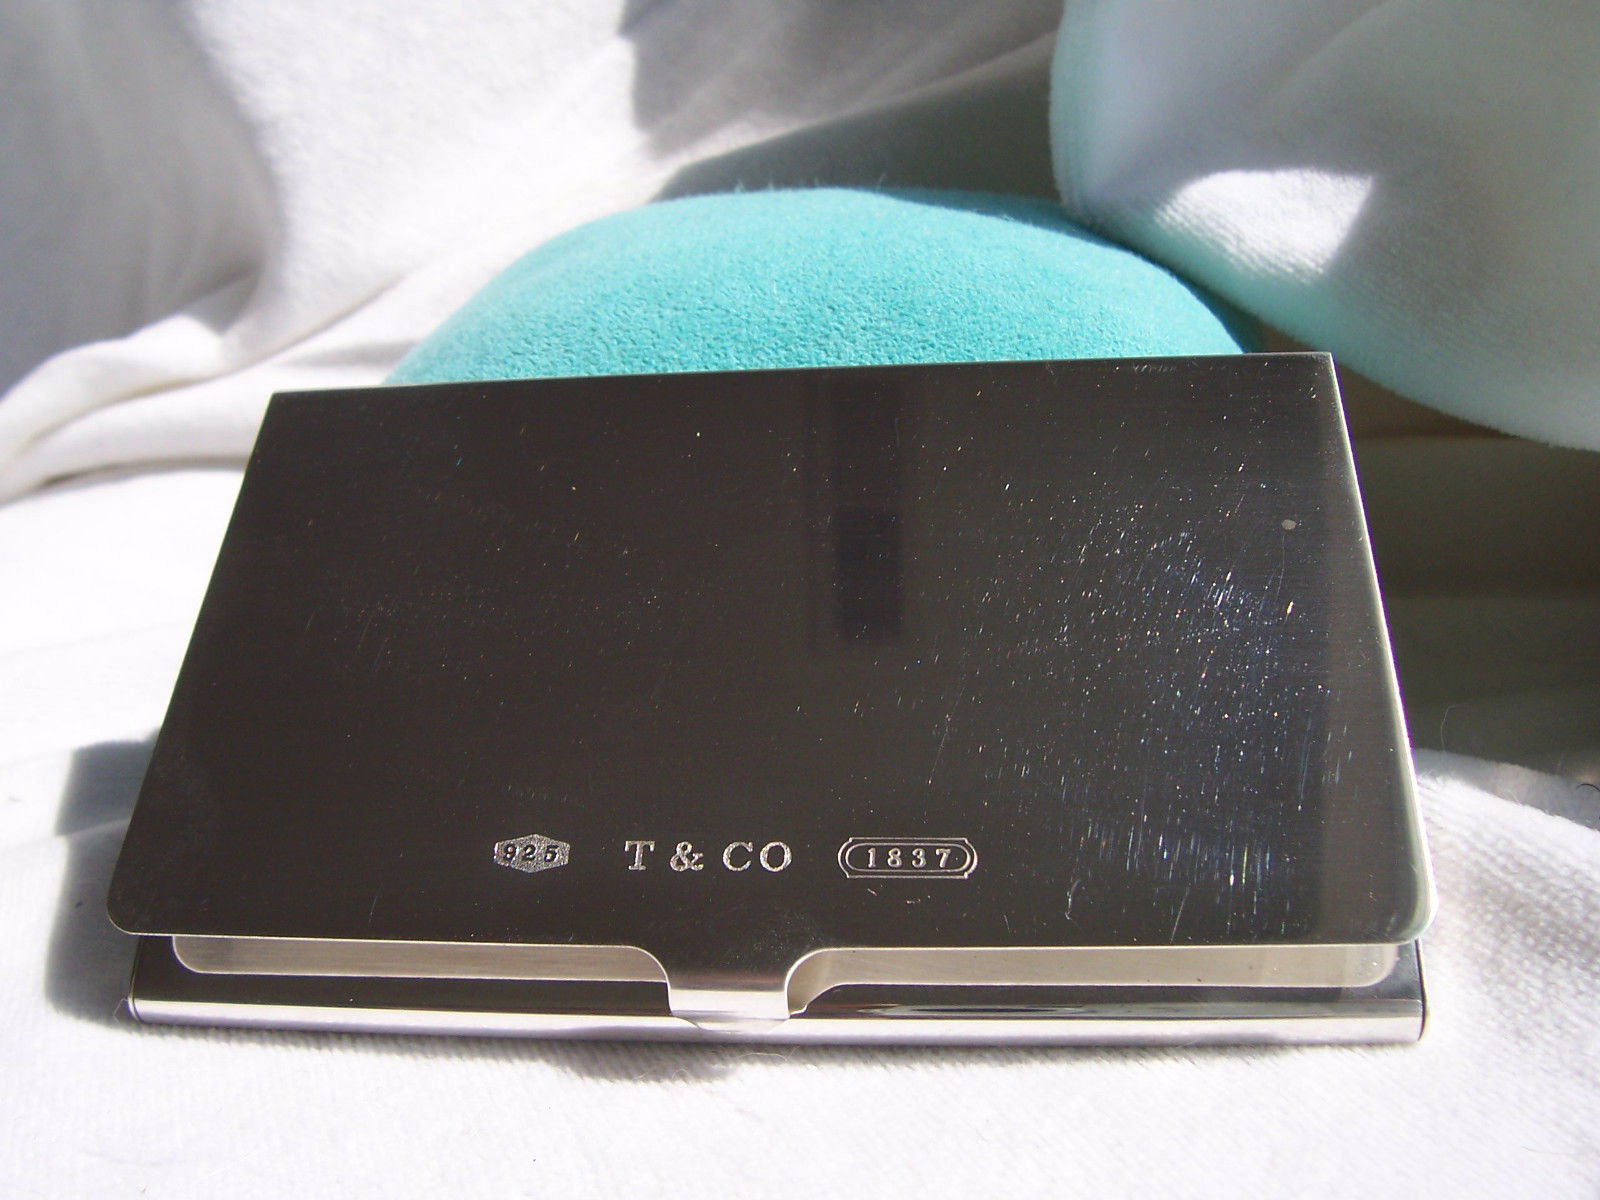 Tiffany & Co. 1837® Business Card Case!!! and 10 similar items